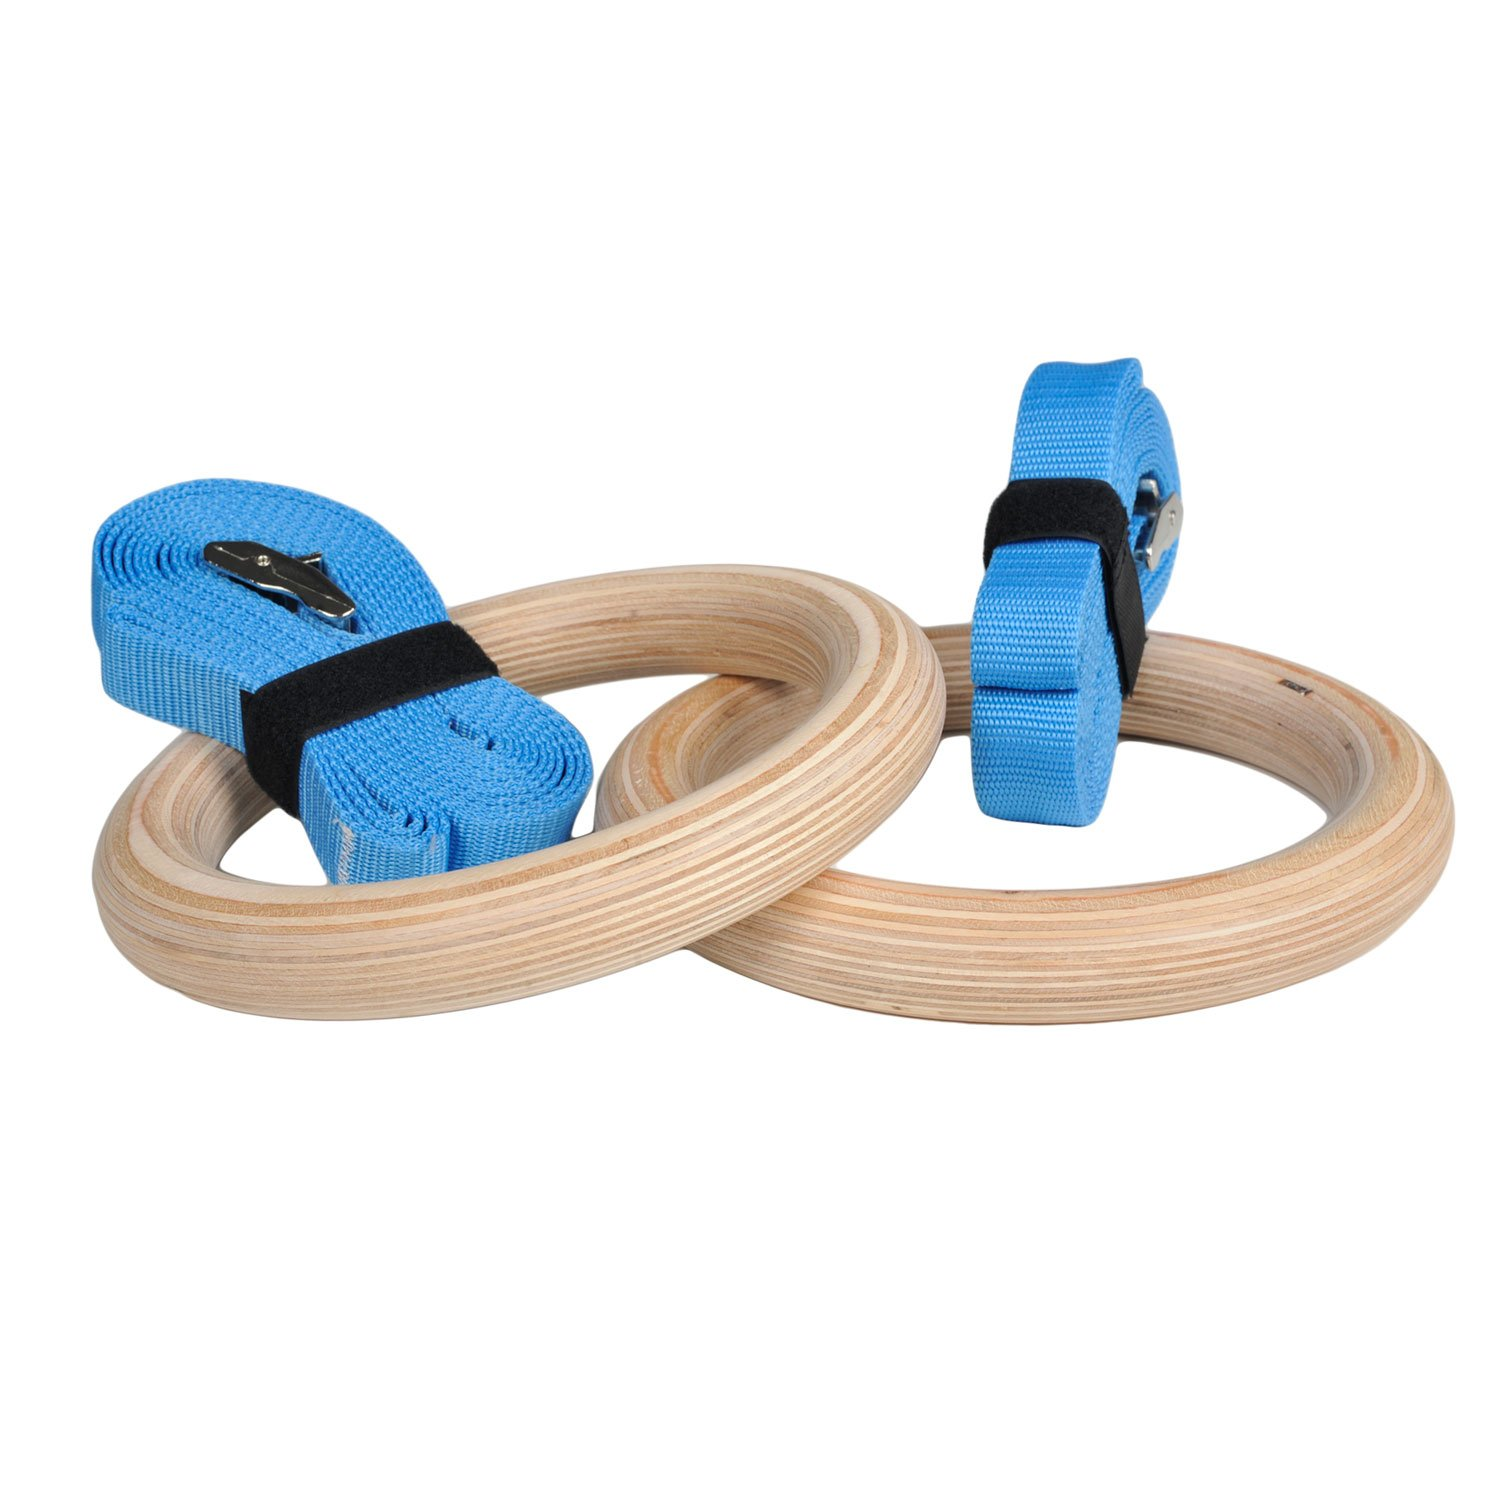 Gymnastic Rings Buying Guide